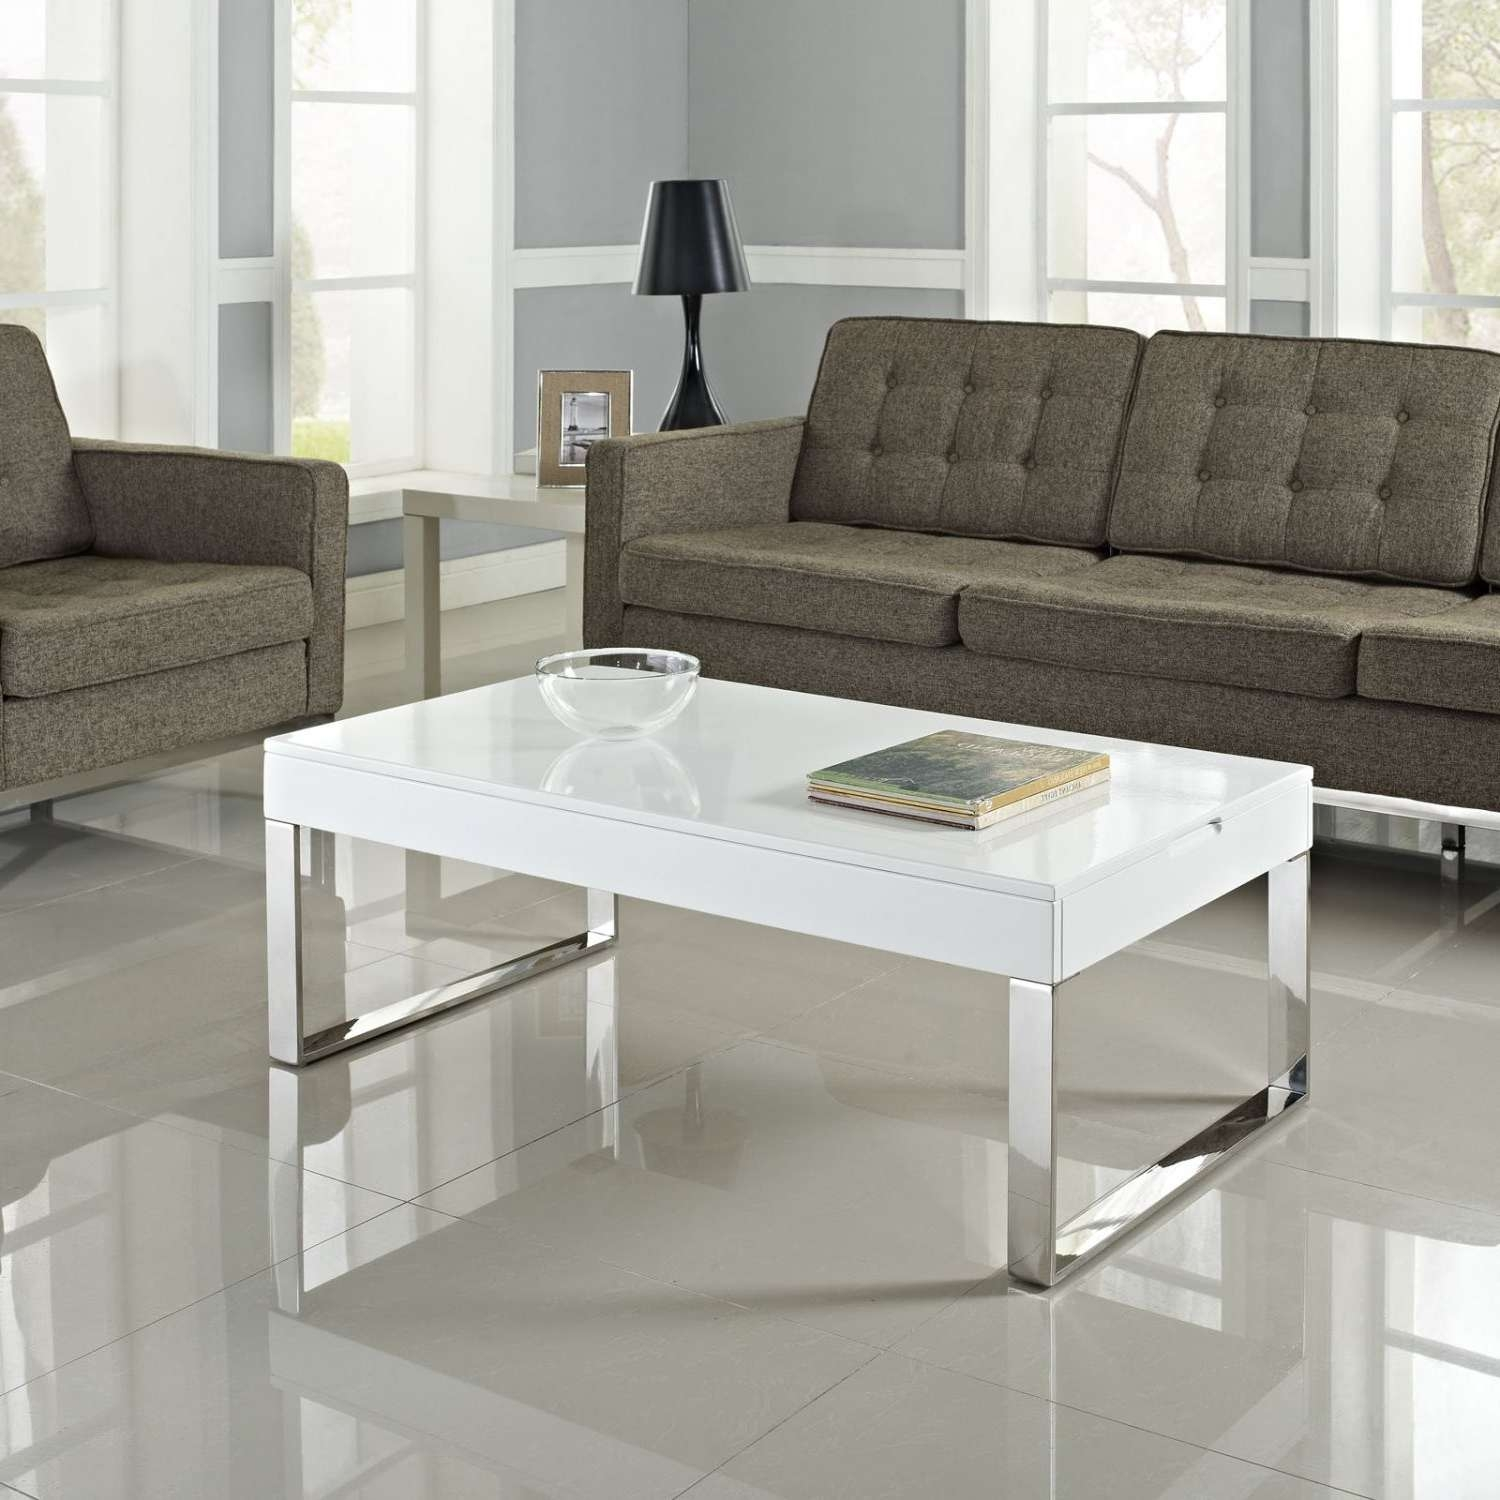 White Gloss Lift Coffee Table – All Furniture Usa In Latest White Gloss Coffee Tables (View 20 of 20)